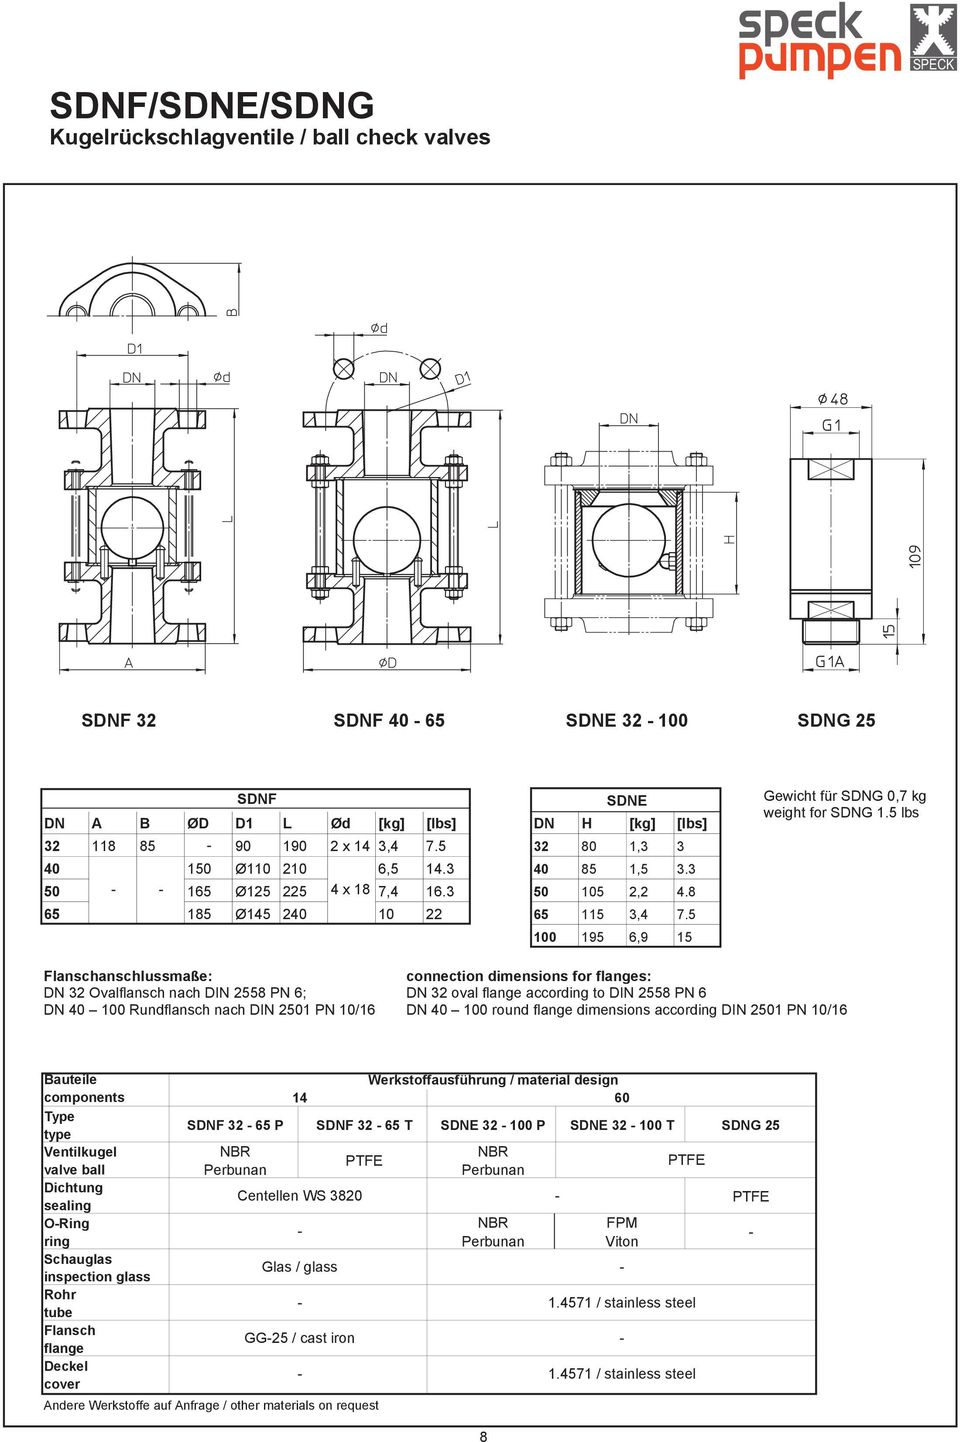 5 lbs Flanschanschlussmaße: DN 32 Ovalflansch nach DIN 2558 PN 6; DN 40 100 Rundflansch nach DIN 2501 PN 10/16 connection dimensions for flanges: DN 32 oval flange according to DIN 2558 PN 6 DN 40